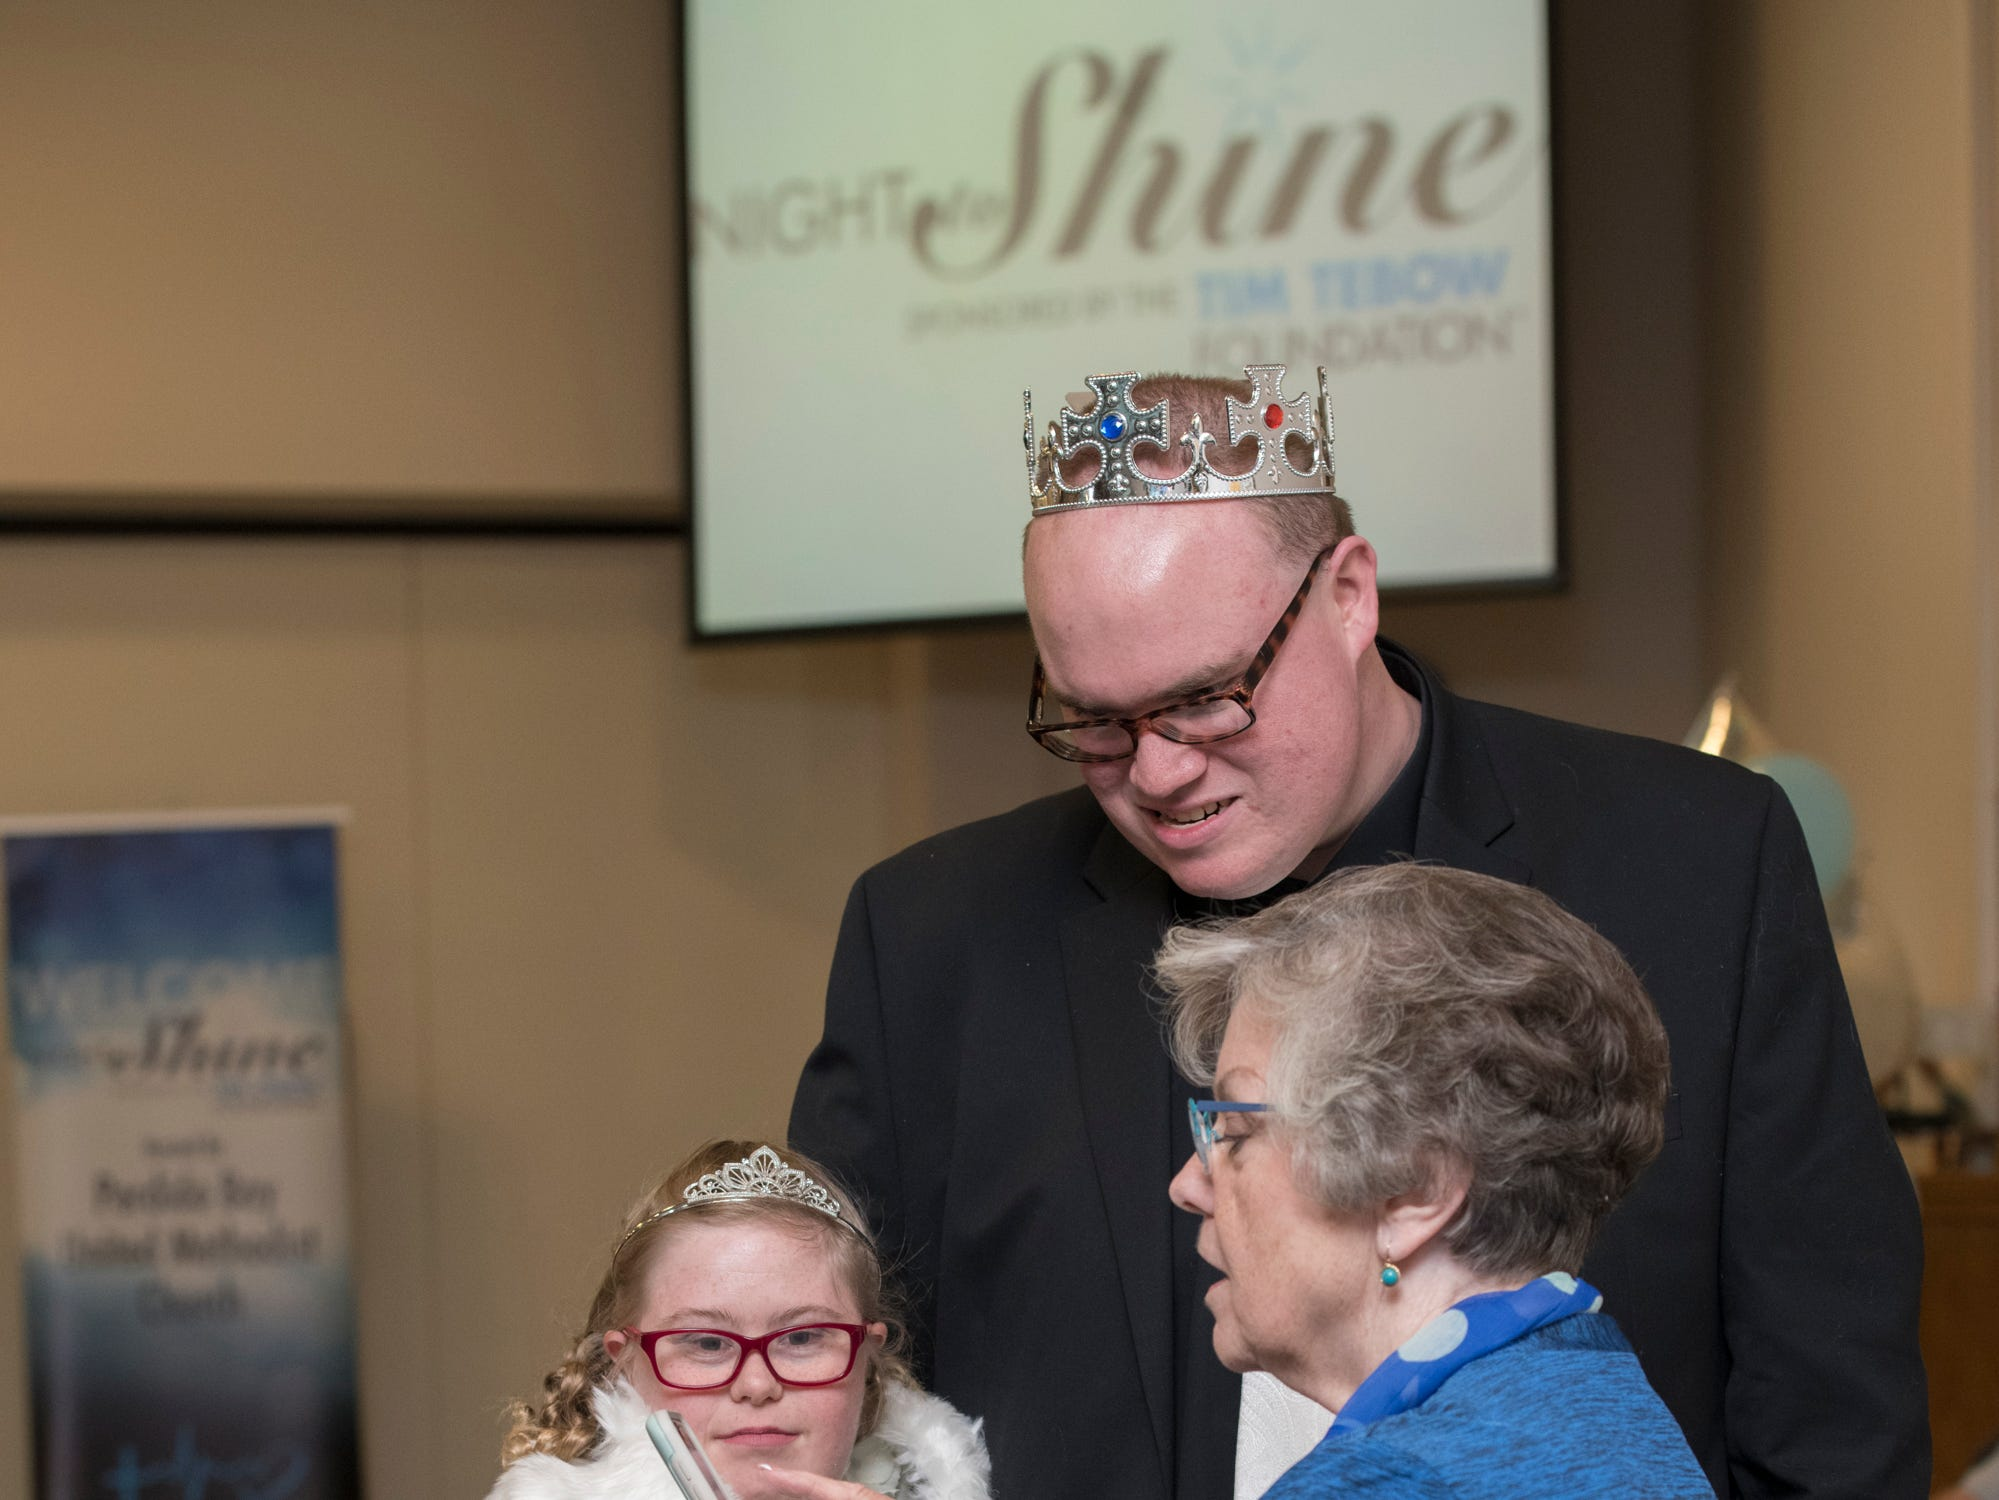 Kaitlyn Evans and Shawn Brown check out a photo of themselves on a phone at the beginning of the Night to Shine prom for people with special needs sponsored by the Tim Tebow Foundation at Perdido Bay United Methodist Church in Pensacola on Friday, February 8, 2019.